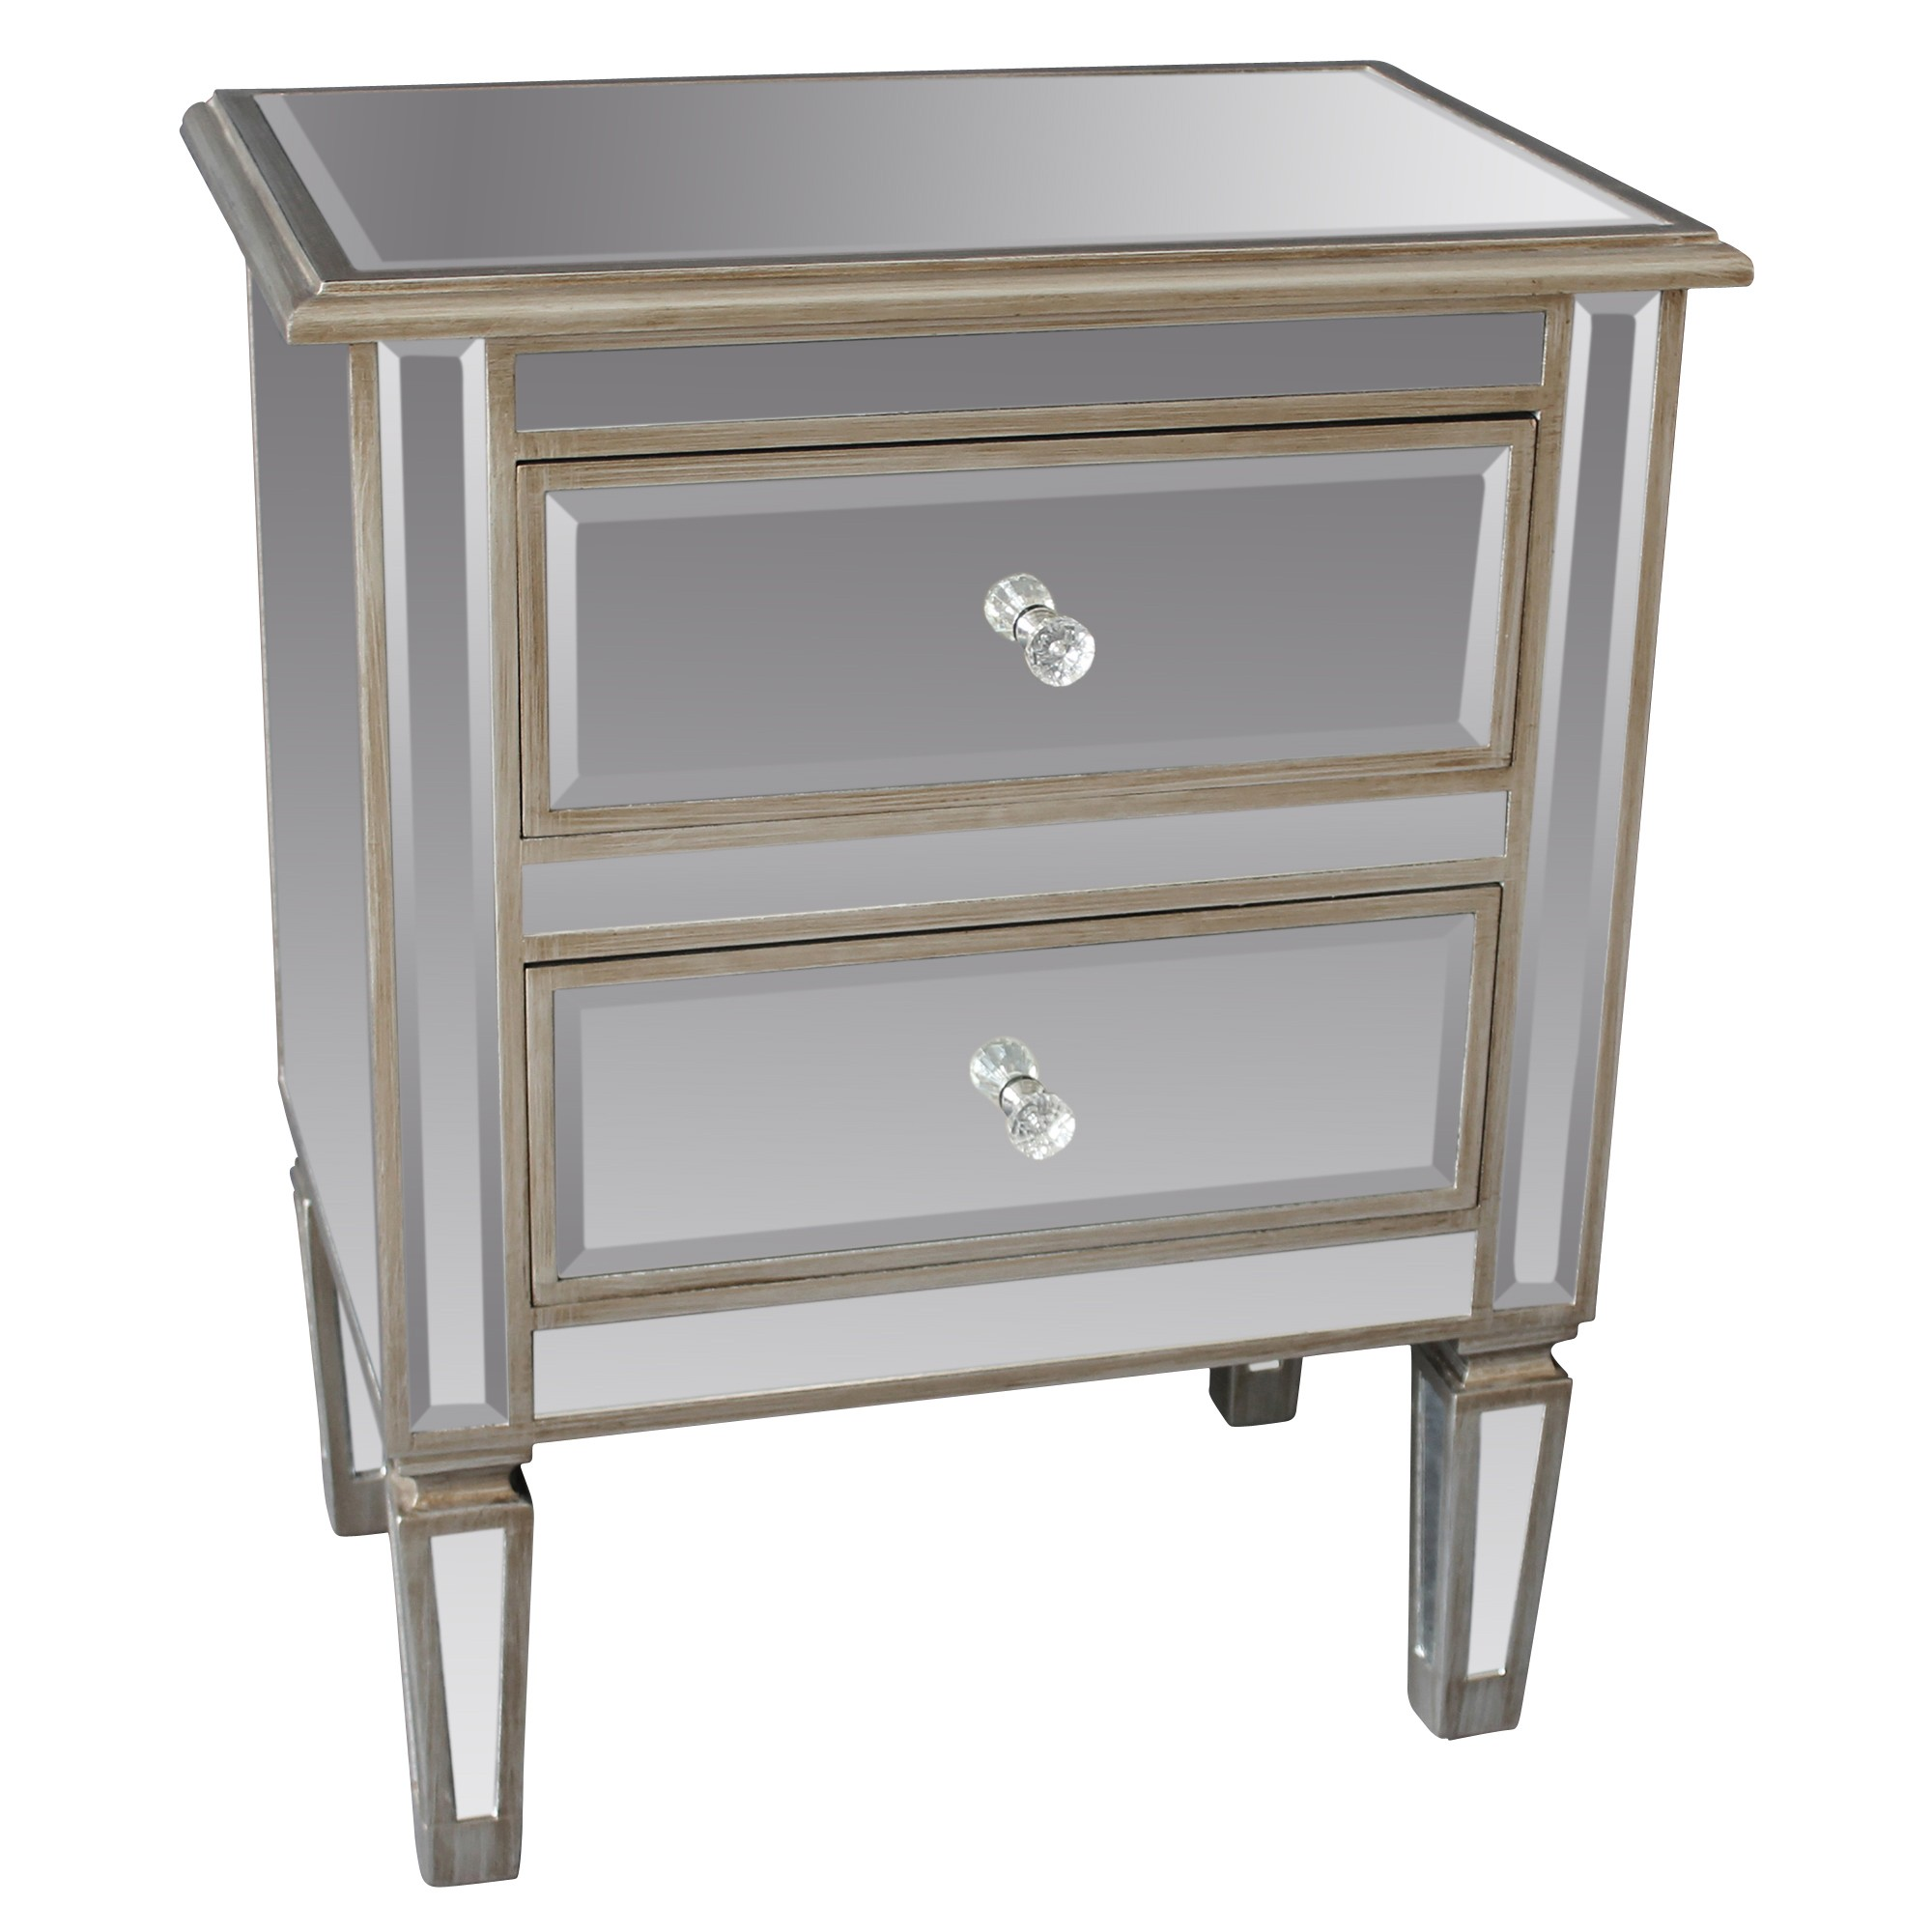 cheerful end nesting tables accent table plus silver gorgeous round full size furniture legs pier one kitchen sets for big chair coffee decor ideas black mirrored side floor